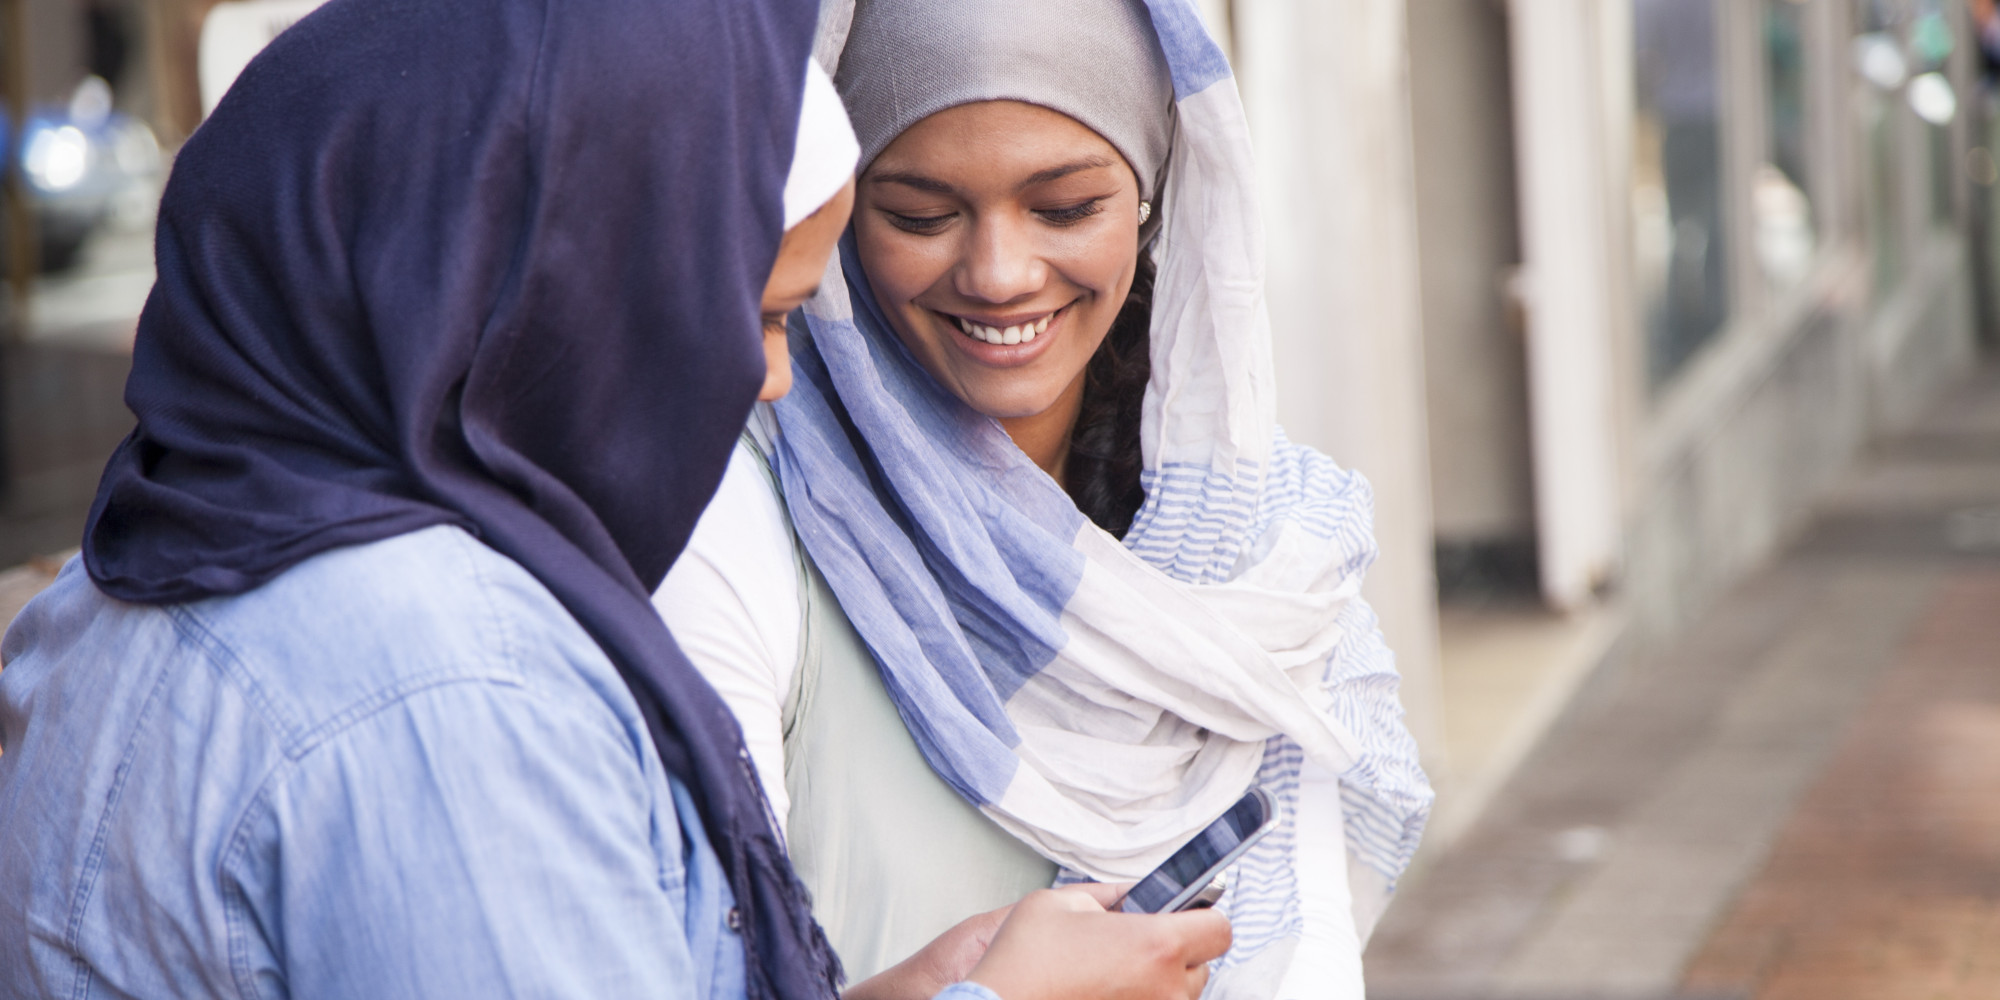 miyazaki muslim girl personals Muslim women talk back as the race for america's next president begins to buckle down, here at muslimgirl we've caught ourselves doing a double take from some of the things we've been hearing from the campaigns.